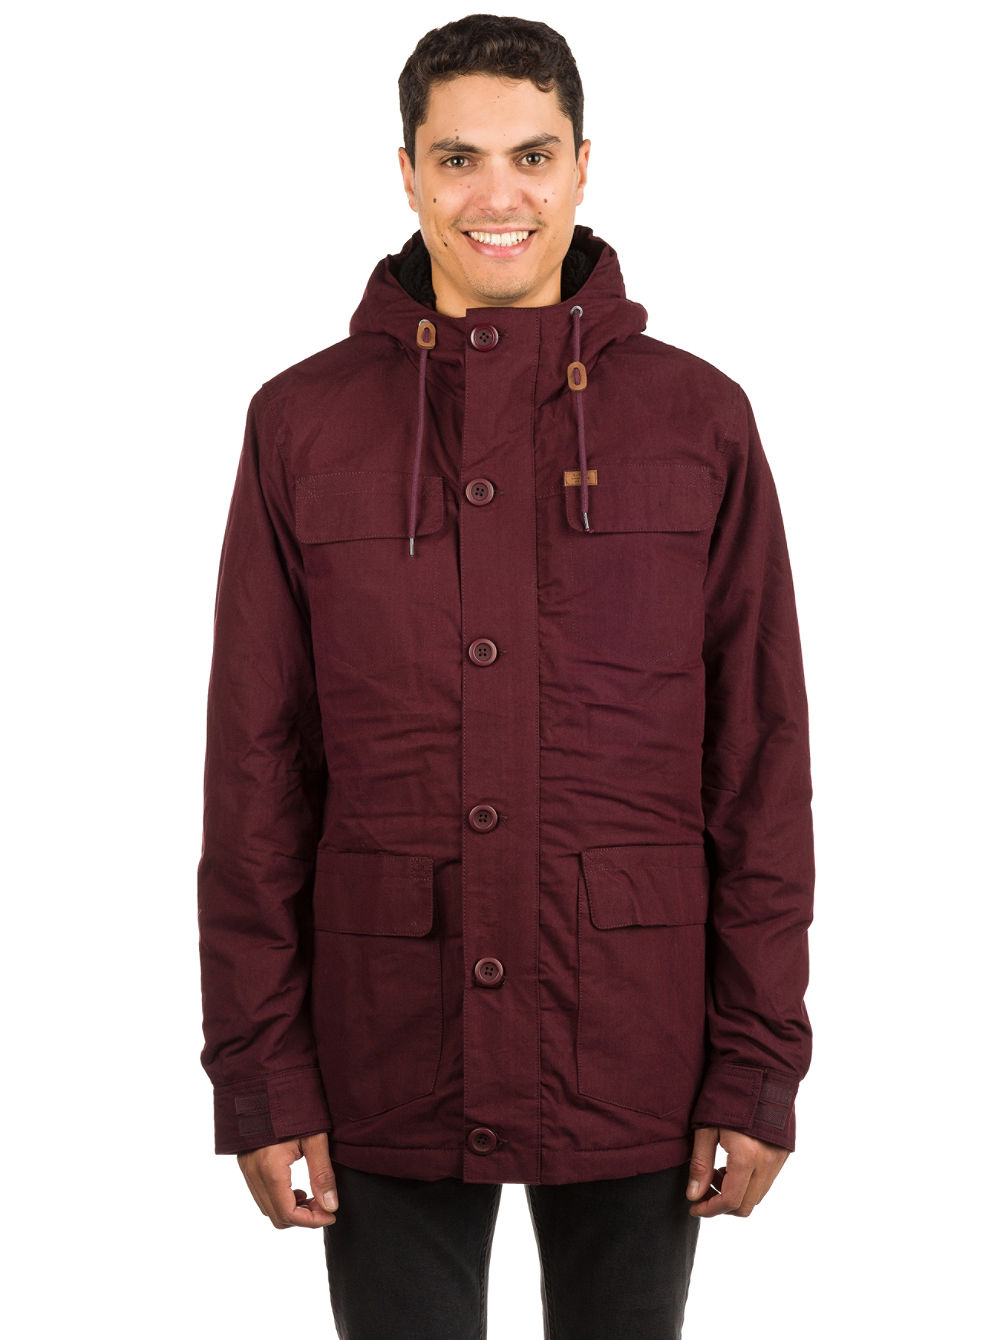 Goodstock Thermal Parka Jacke